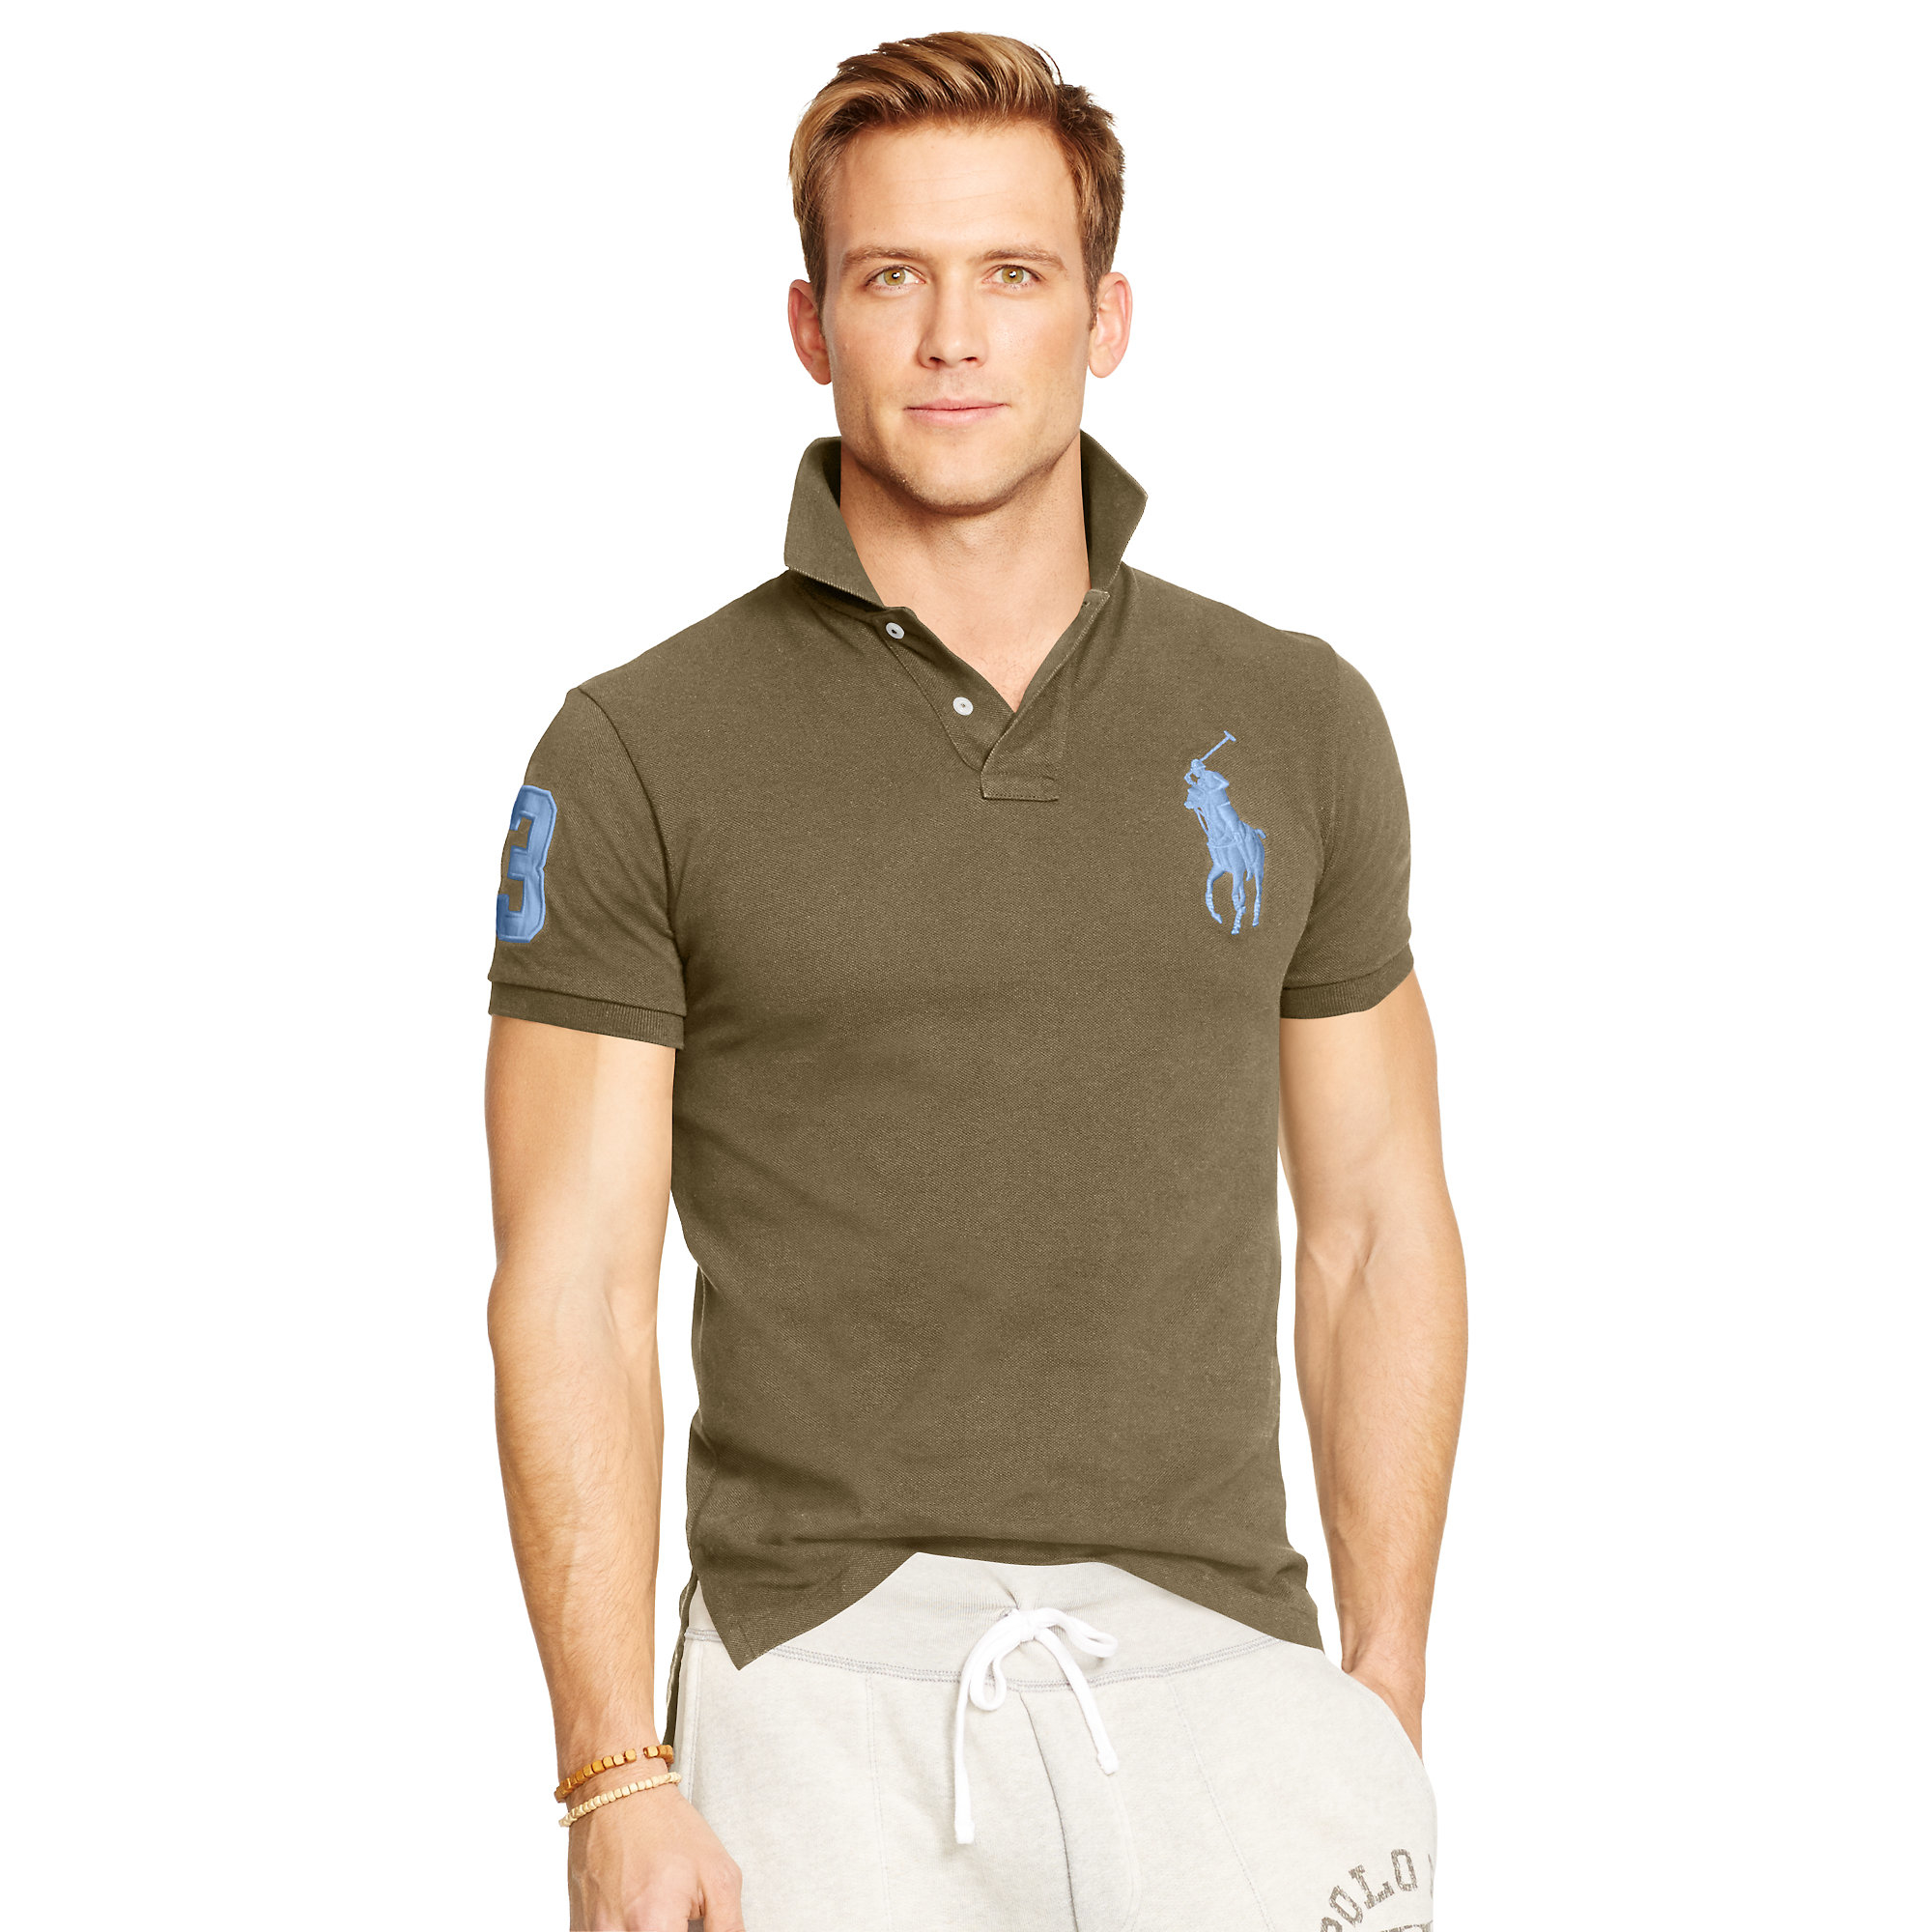 be665dd0 Lyst - Polo Ralph Lauren Custom-fit Big Pony Polo in Green for Men